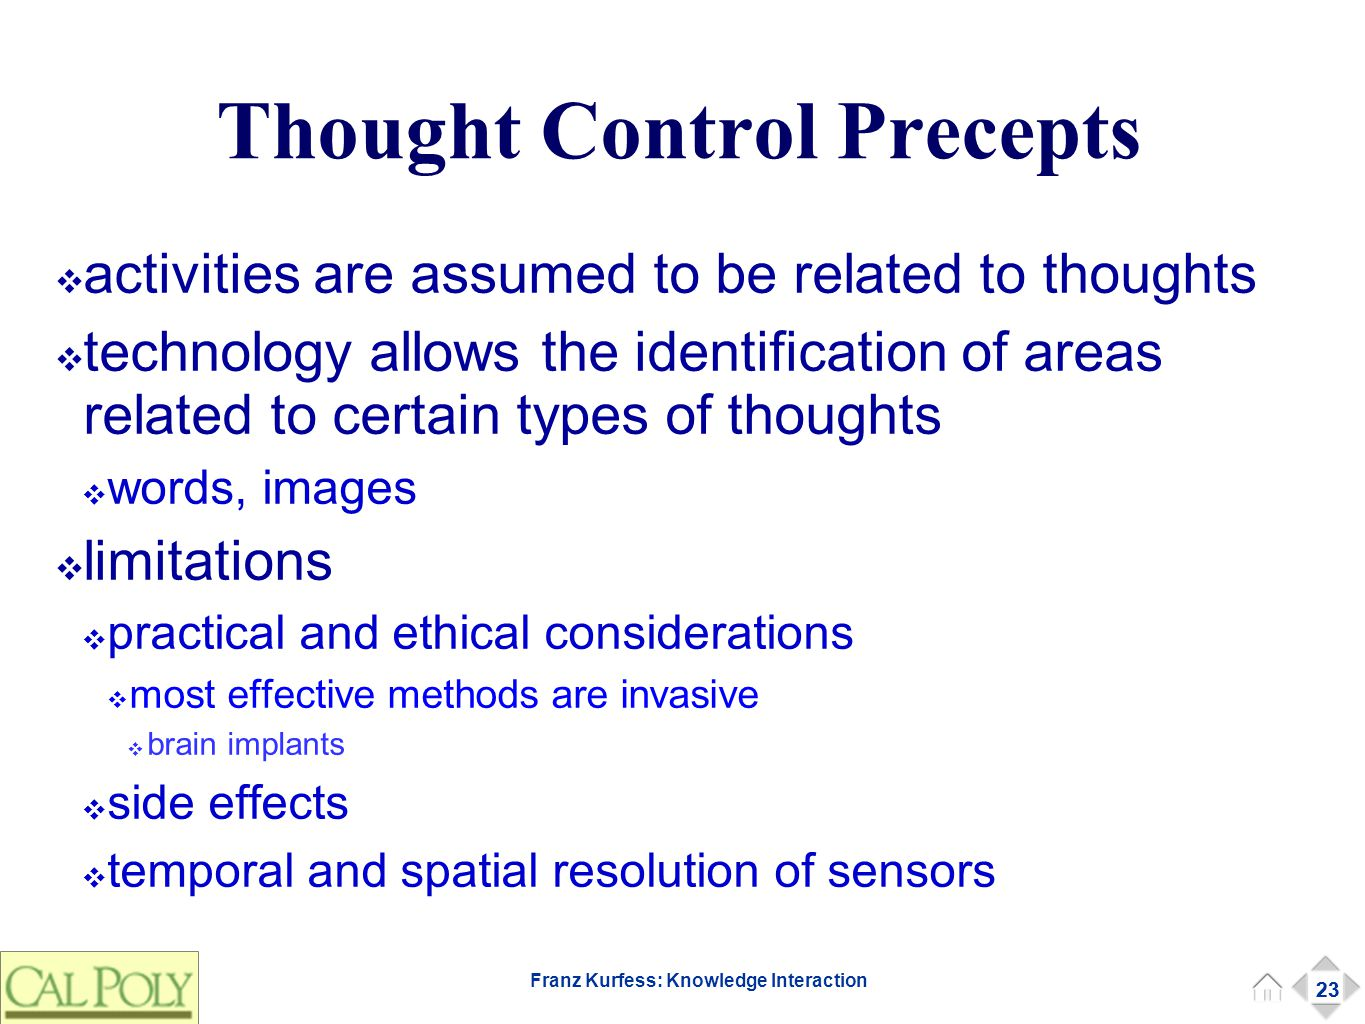 23 Franz Kurfess: Knowledge Interaction Thought Control Precepts ❖ activities are assumed to be related to thoughts ❖ technology allows the identifica